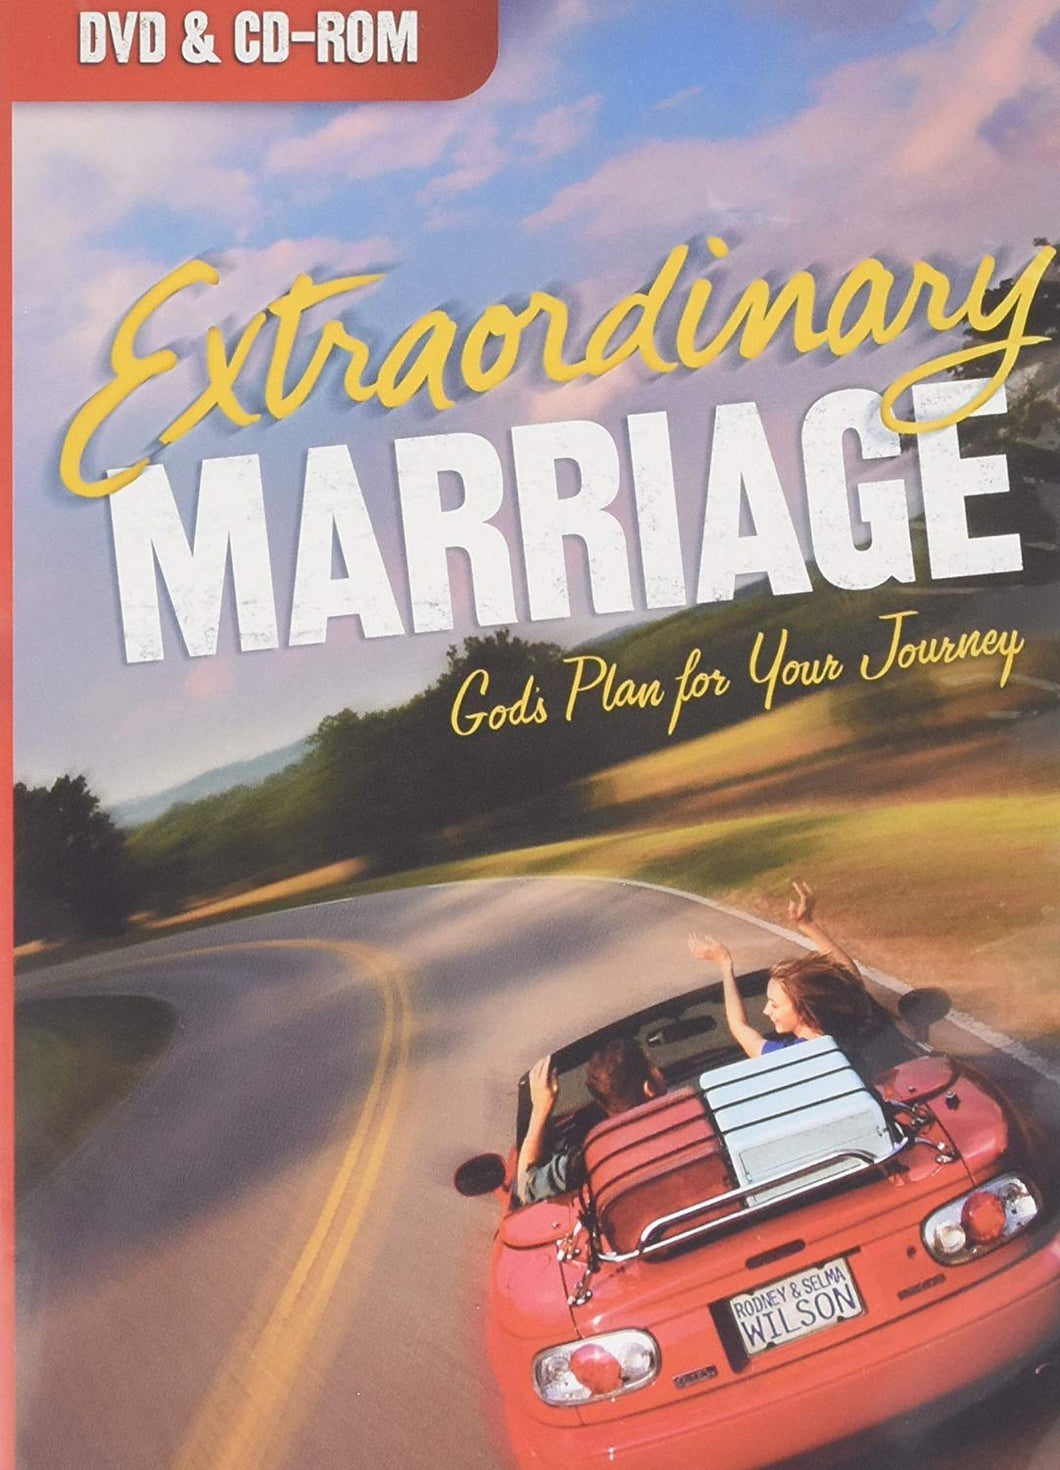 Extraordinary Marriage Gods Plan for You